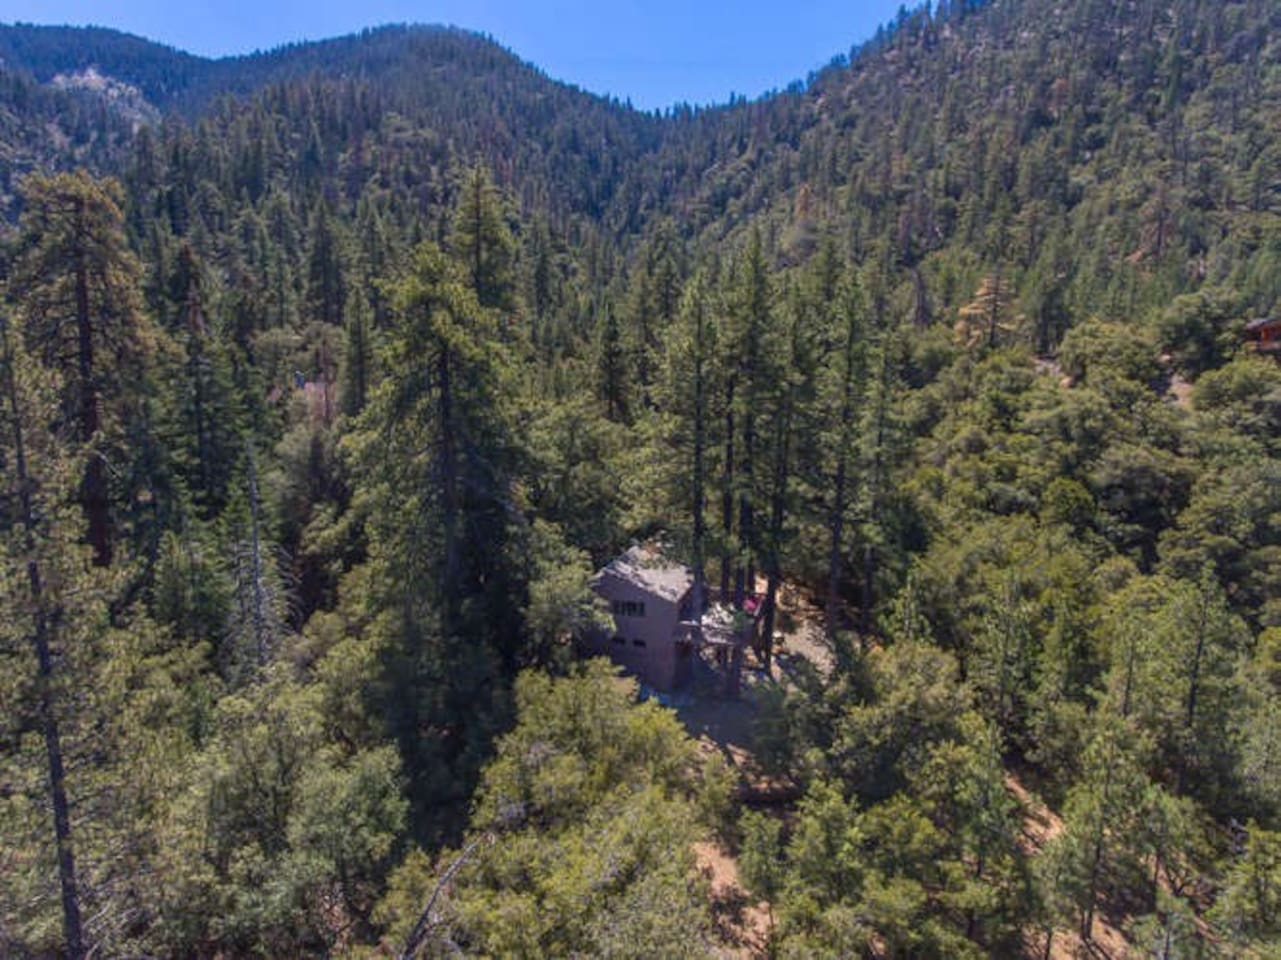 Aerial view of Romance in the Pines. We have a next-door neighbor in a log cabin out of view, but still plenty of privacy!